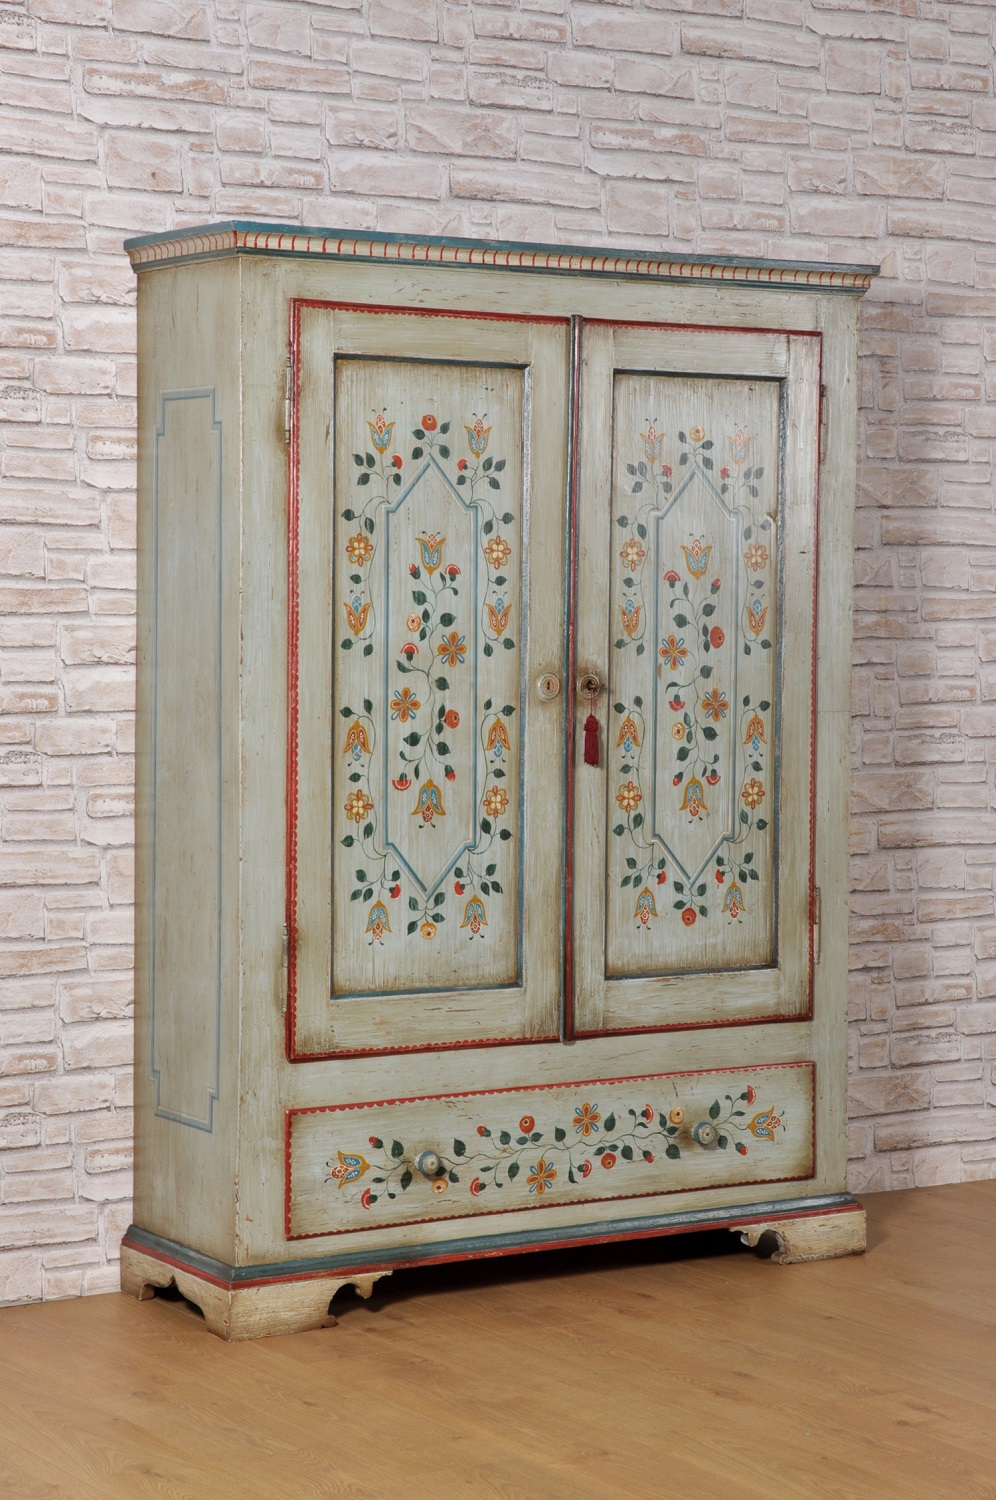 Un pezzo di dipinto a mano mobili antichi è un accento benvenuto in ogni casa. Tyrolean Luxury Wardrobe In Solid Spruce With Two Doors And A Drawer Decorated With Stylized Polychrome Flowers Mobili Vangelista